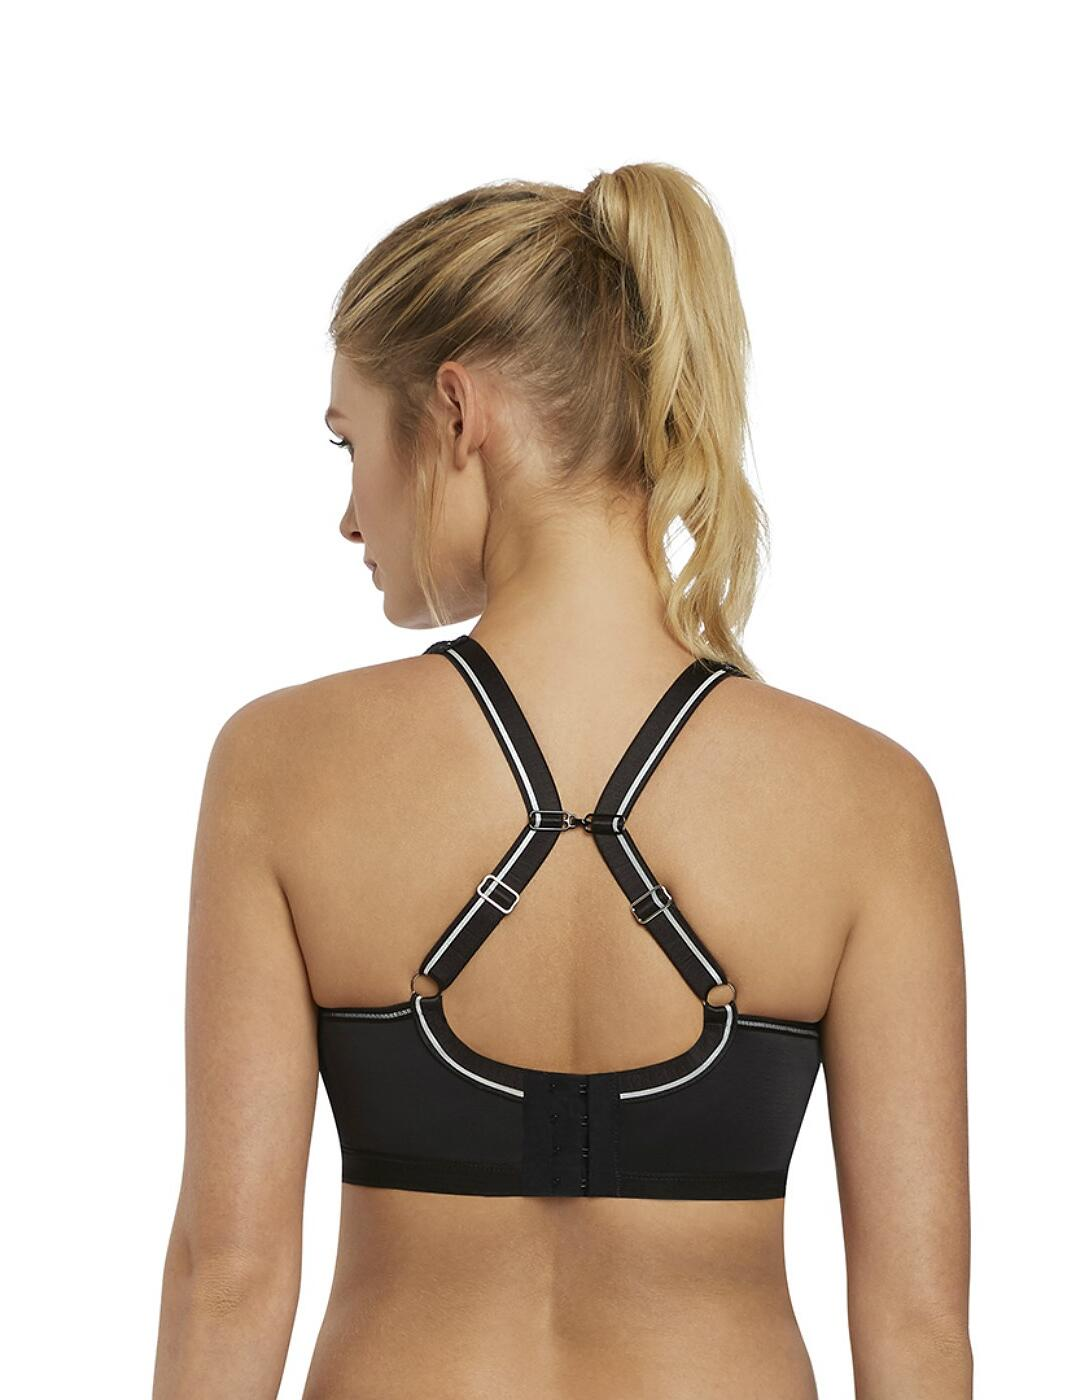 Freya-Active-Sports-Bra-Sonic-Underwired-Moulded-4892-Supportive-High-Impact thumbnail 4